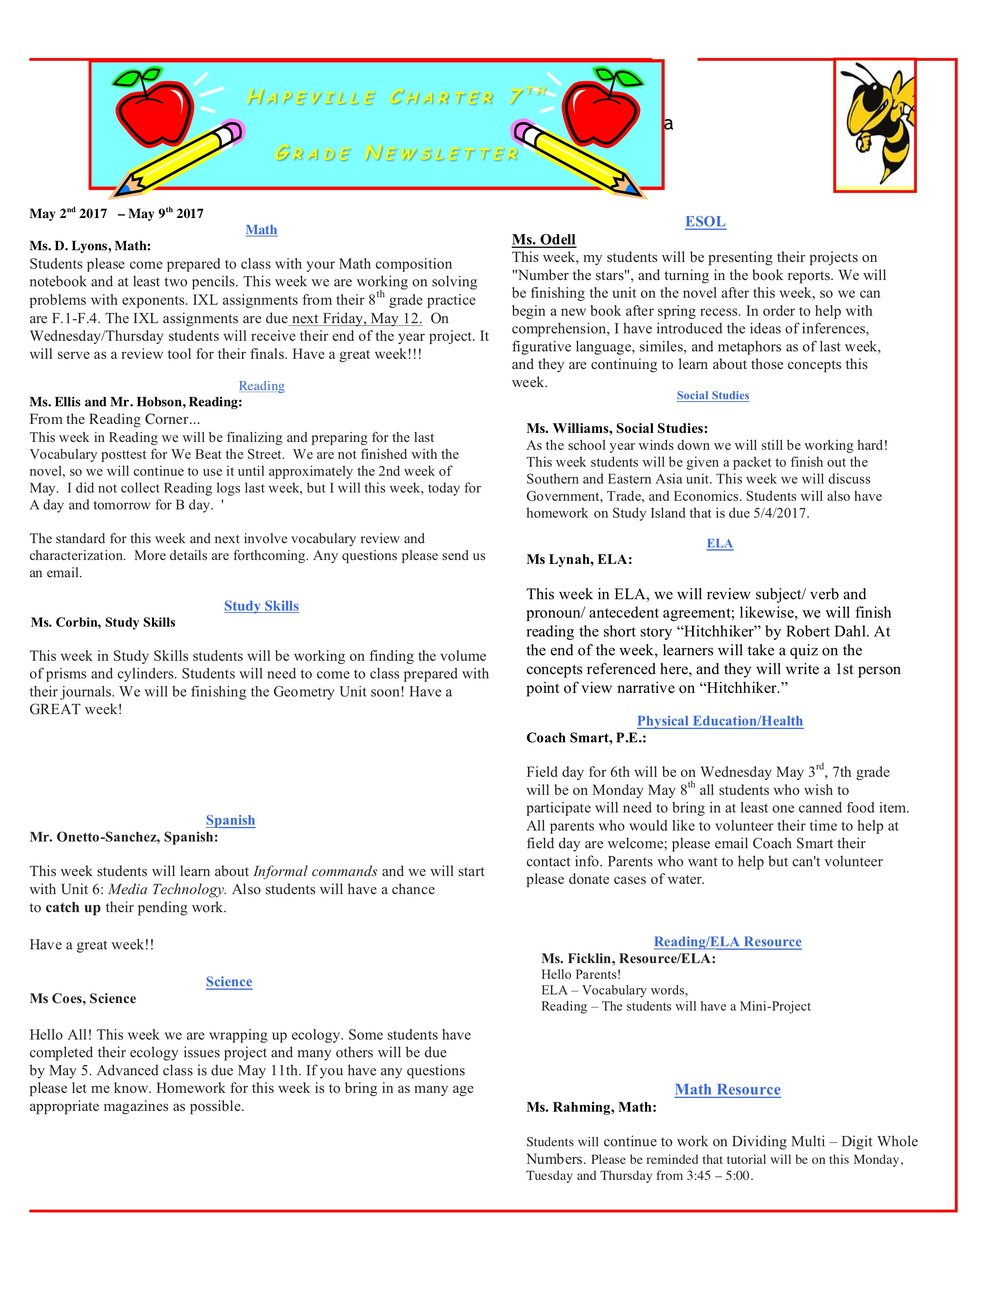 Newsletter Image7th Grade Newsletter 5-1-2017.jpeg